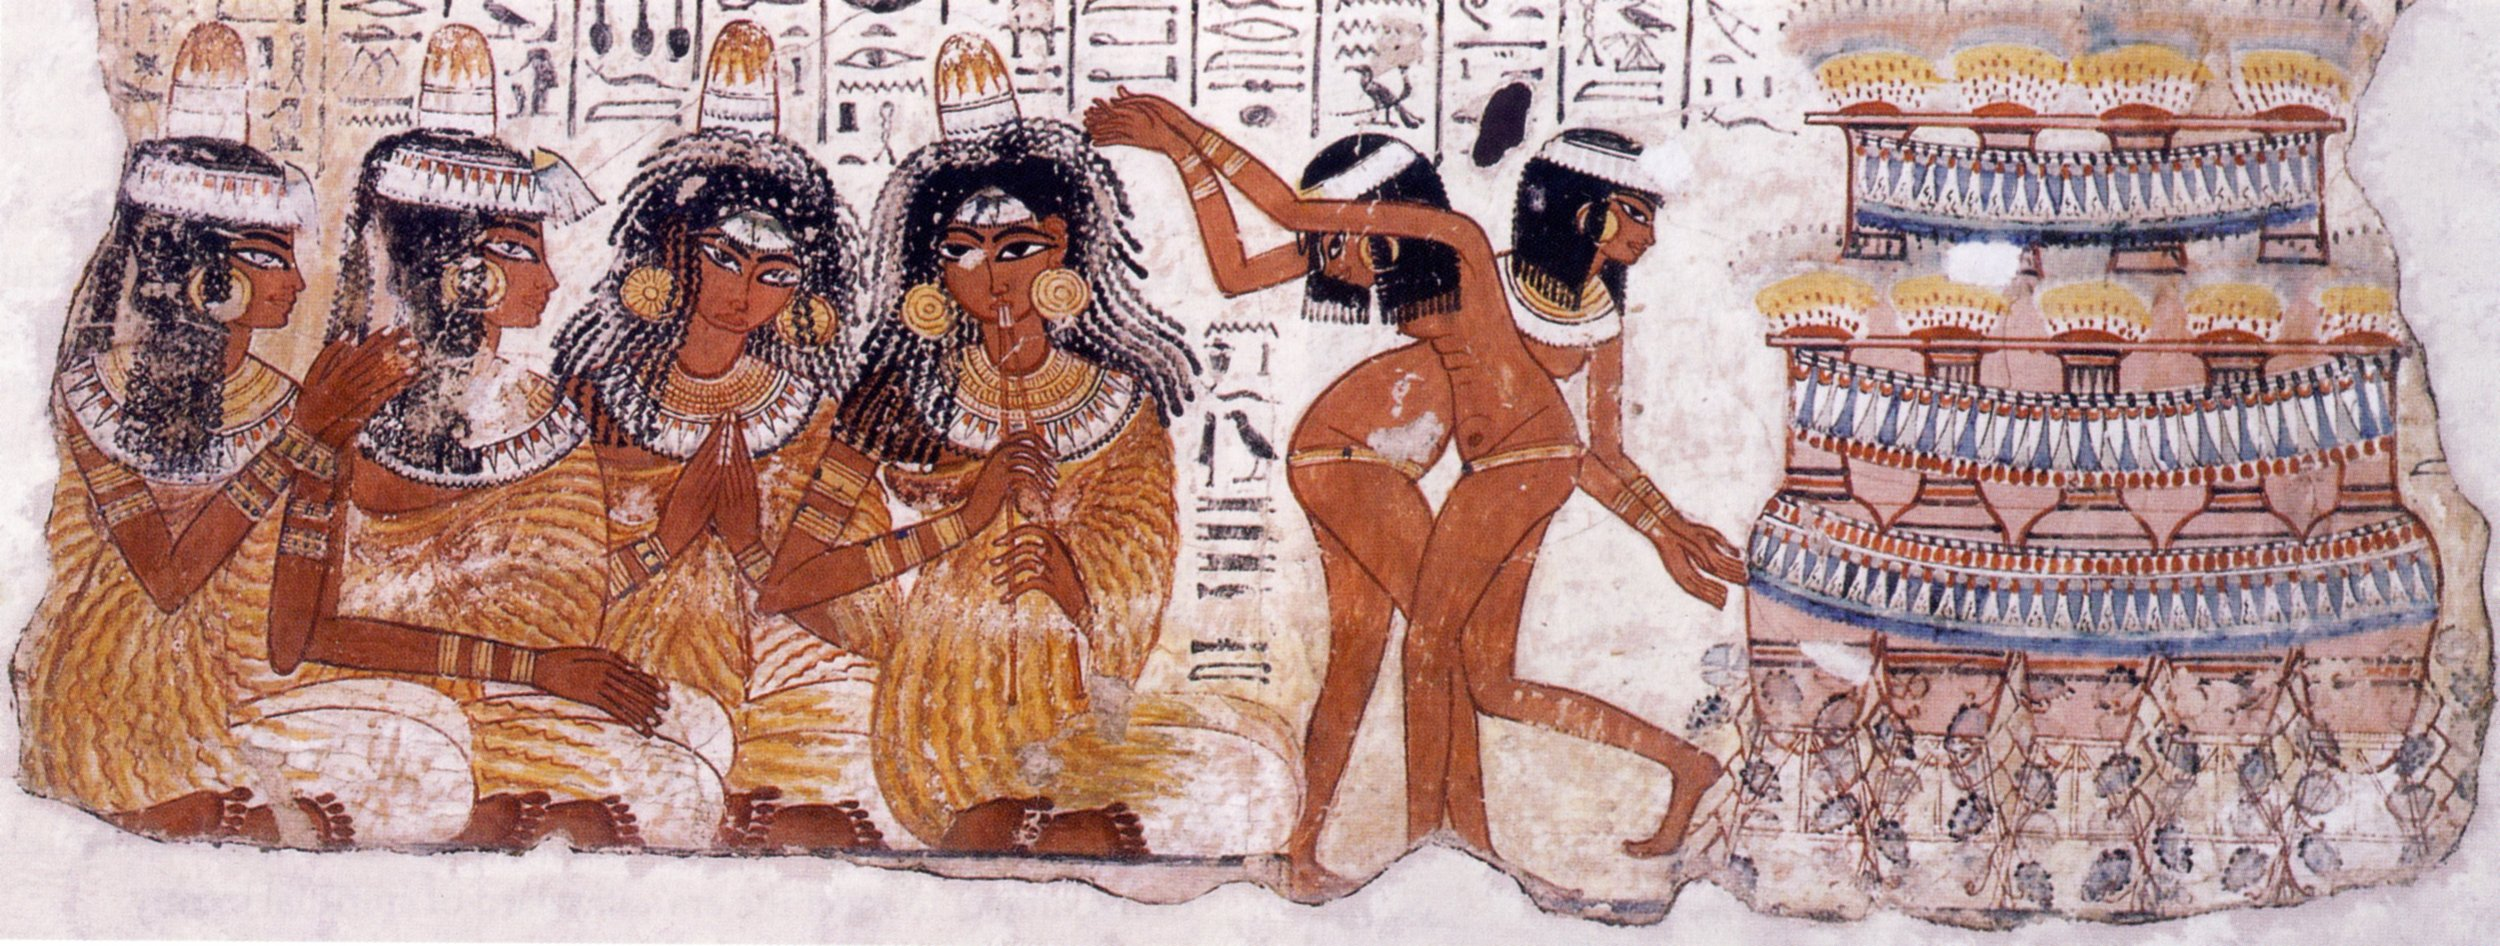 Let's Dive In! - A fresco of lady dancers and musicians from the tomb of Nebamun, Wikicommons.